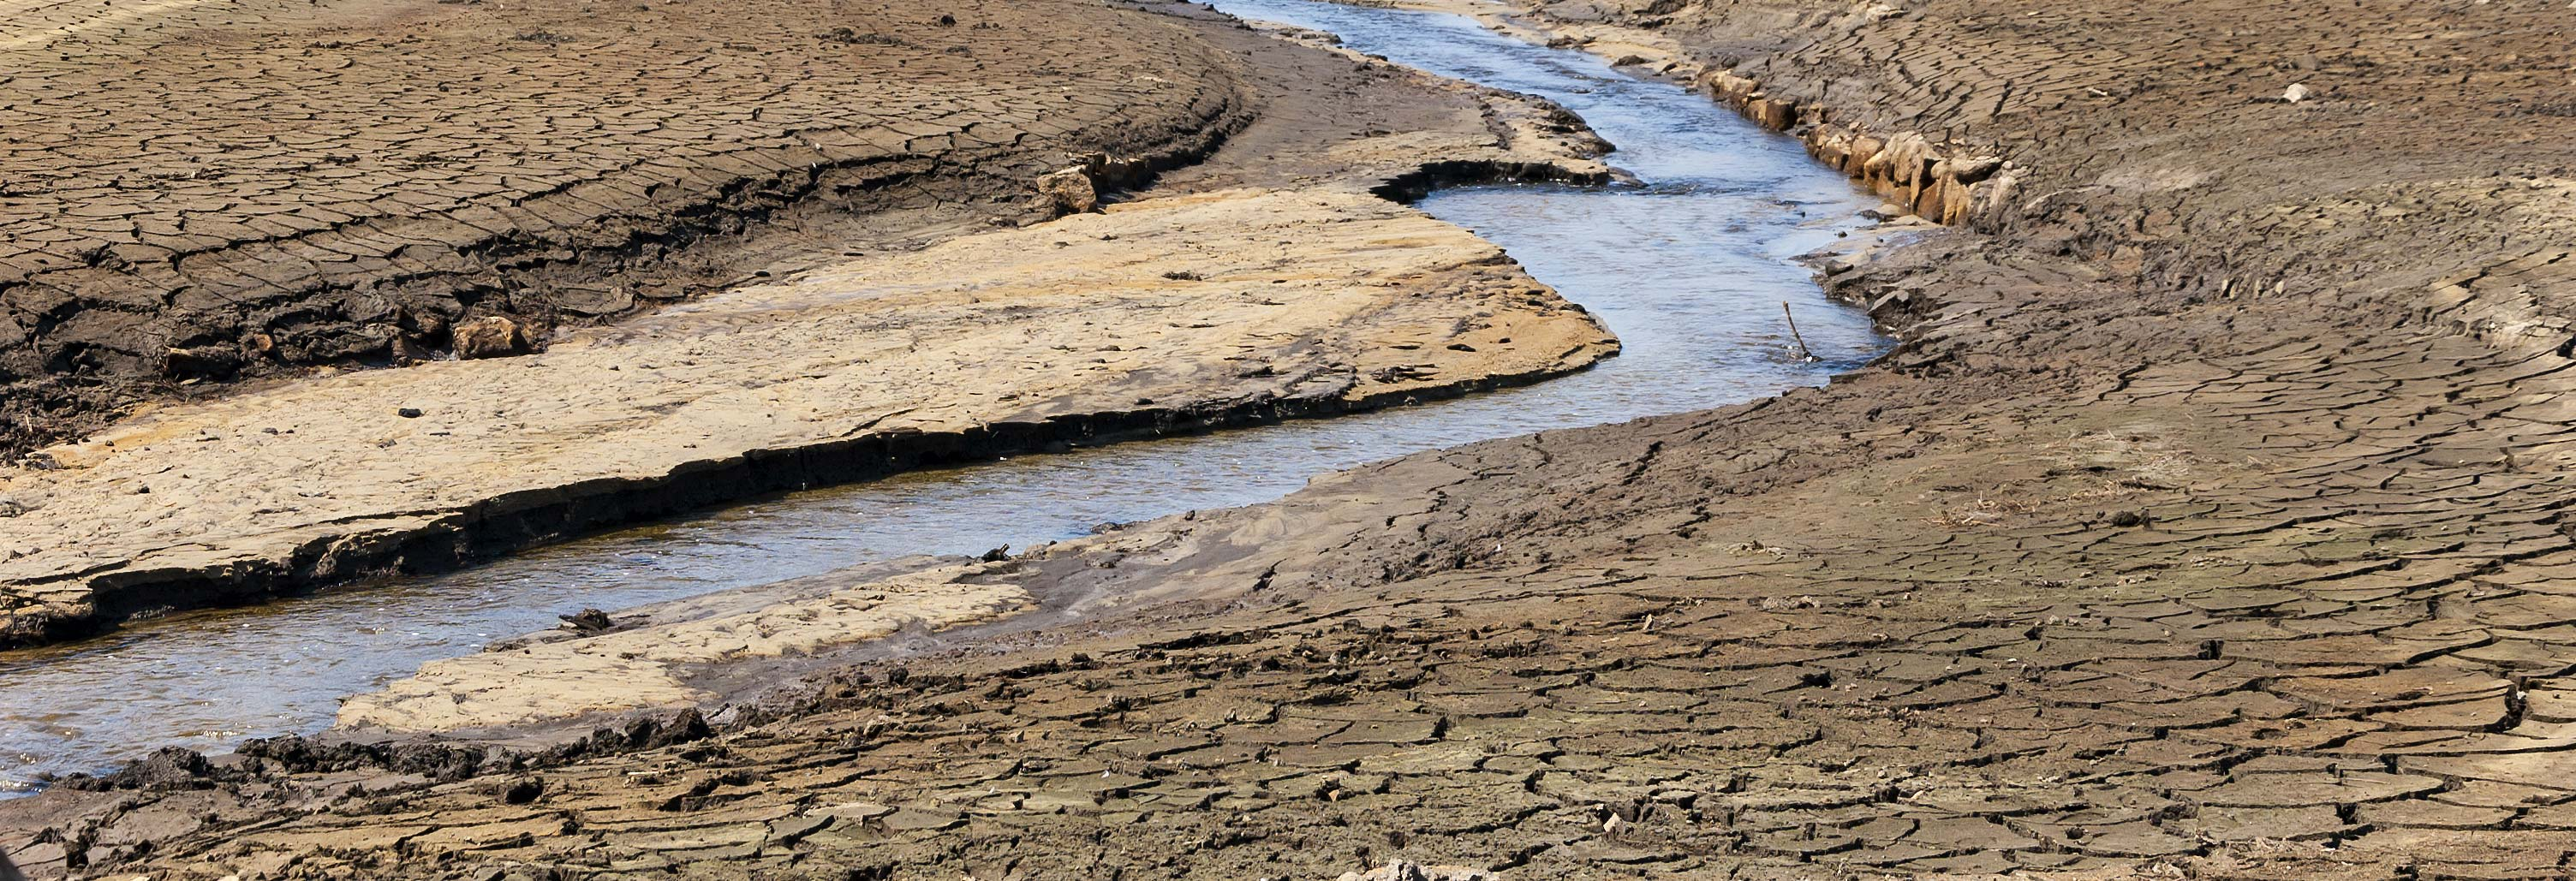 A river with dried and cracked soil